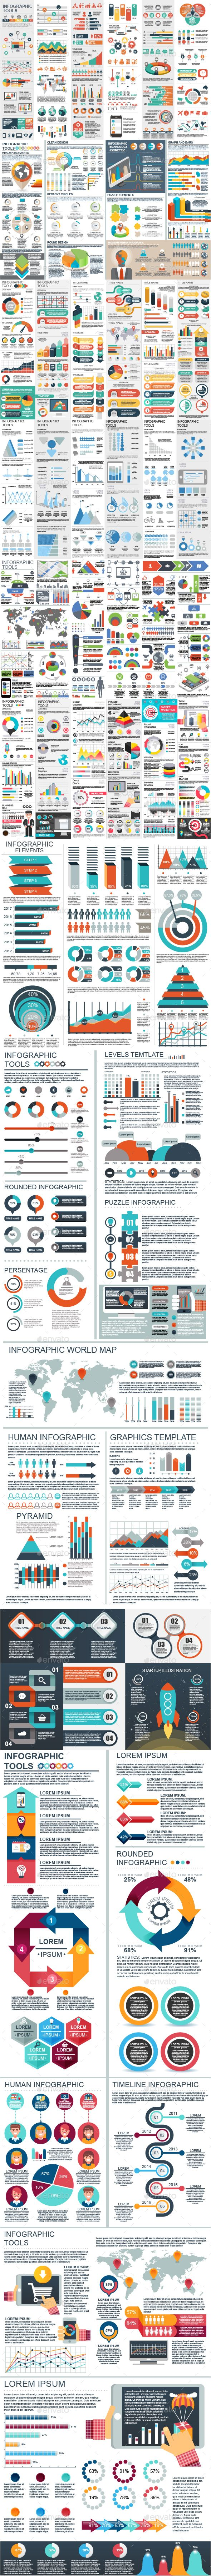 #Bundle Infographic Elements - #Infographics Download here: https://graphicriver.net/item/bundle-infographic-elements/20302511?ref=alena994